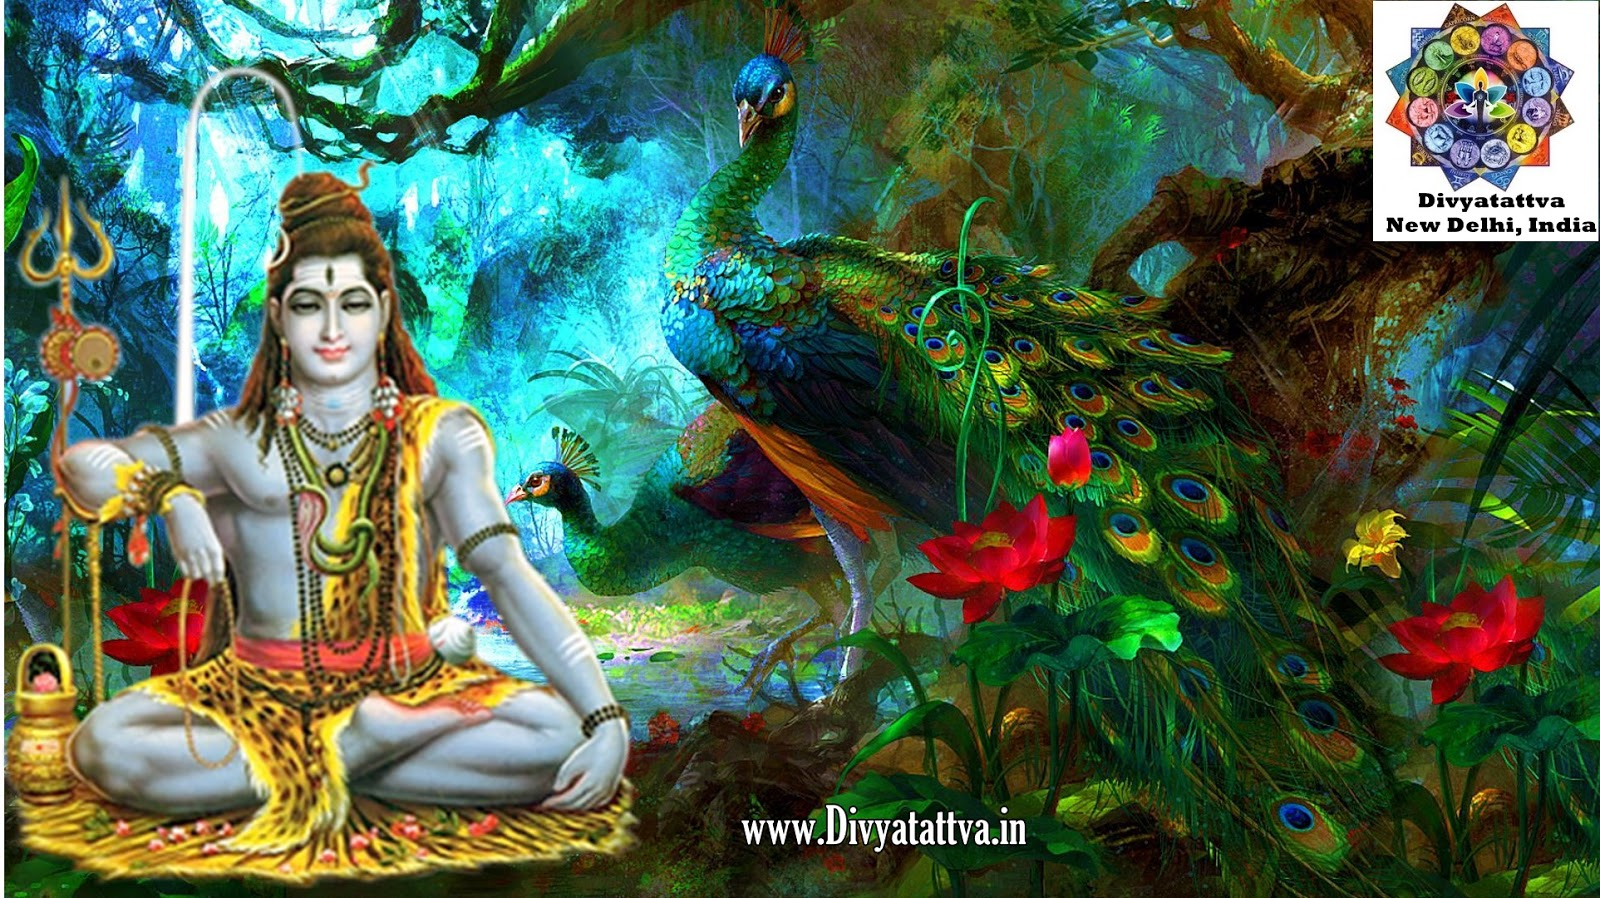 Divyatattva Astrology Free Horoscopes Psychic Tarot Yoga Tantra Occult Images Videos Lord Shiva Hd Wallpapers Full Size Aum High Resolution Backgrounds Photo